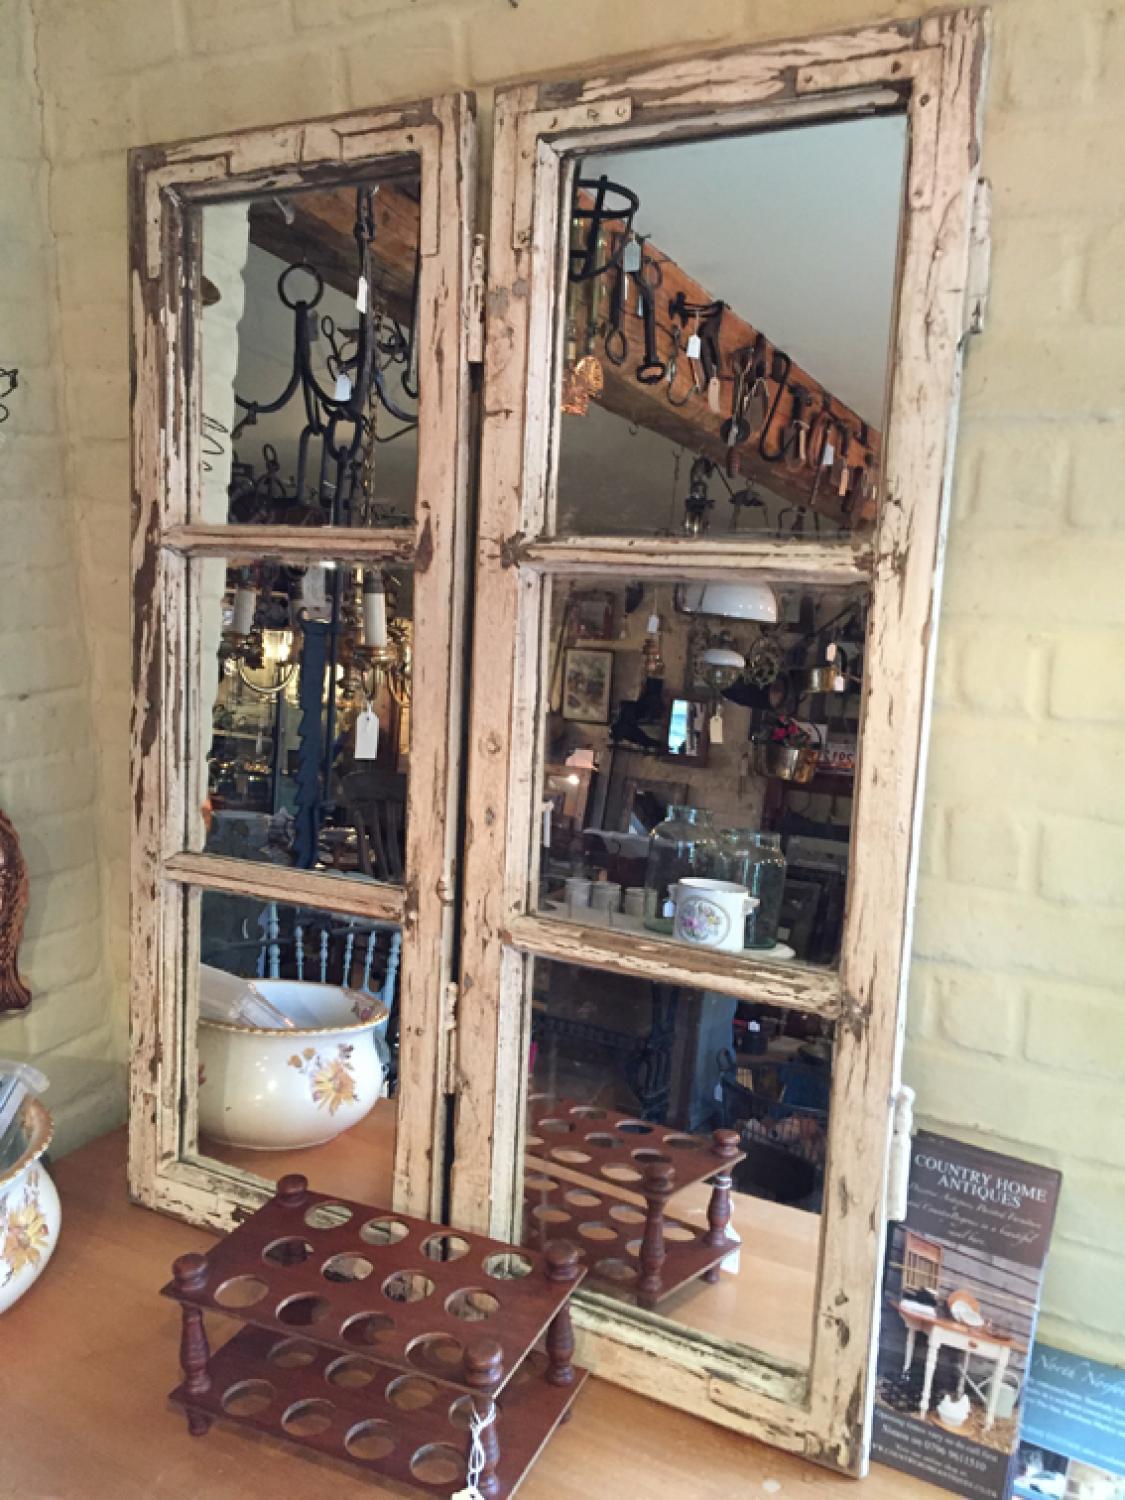 Antique Mirrored French Windows in old White